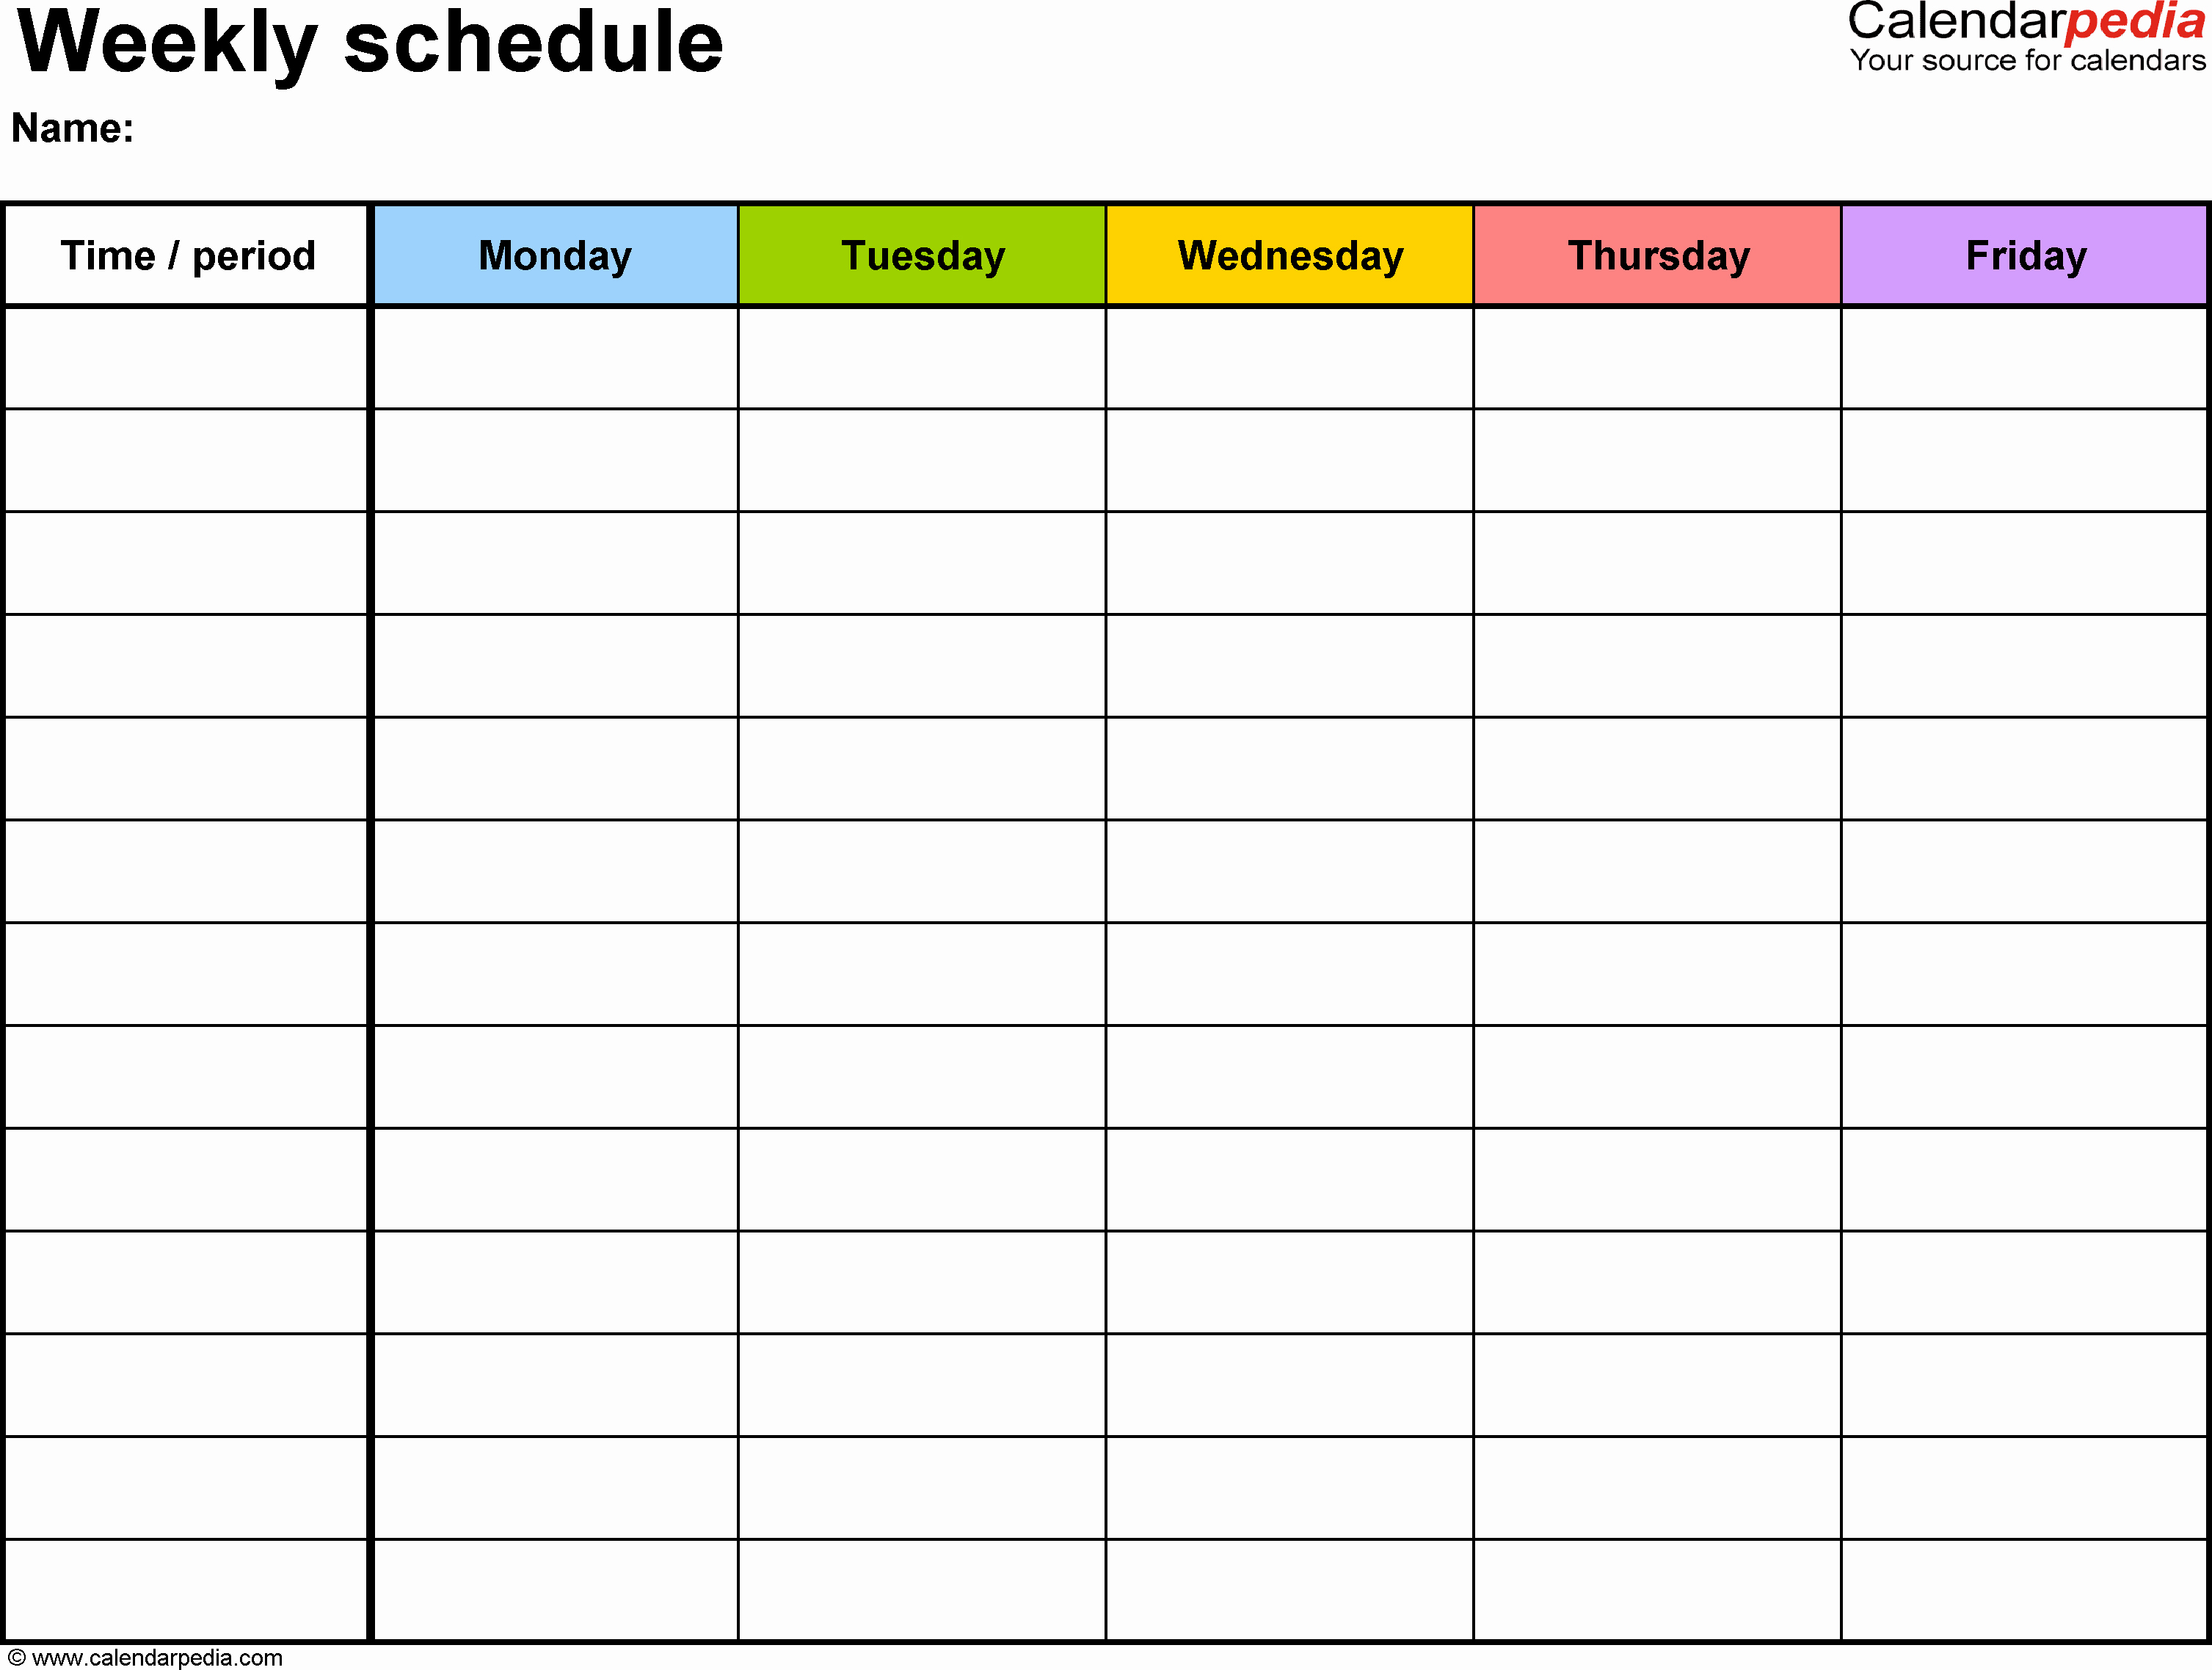 One Week Schedule Template Awesome Free Weekly Schedule Templates for Word 18 Templates